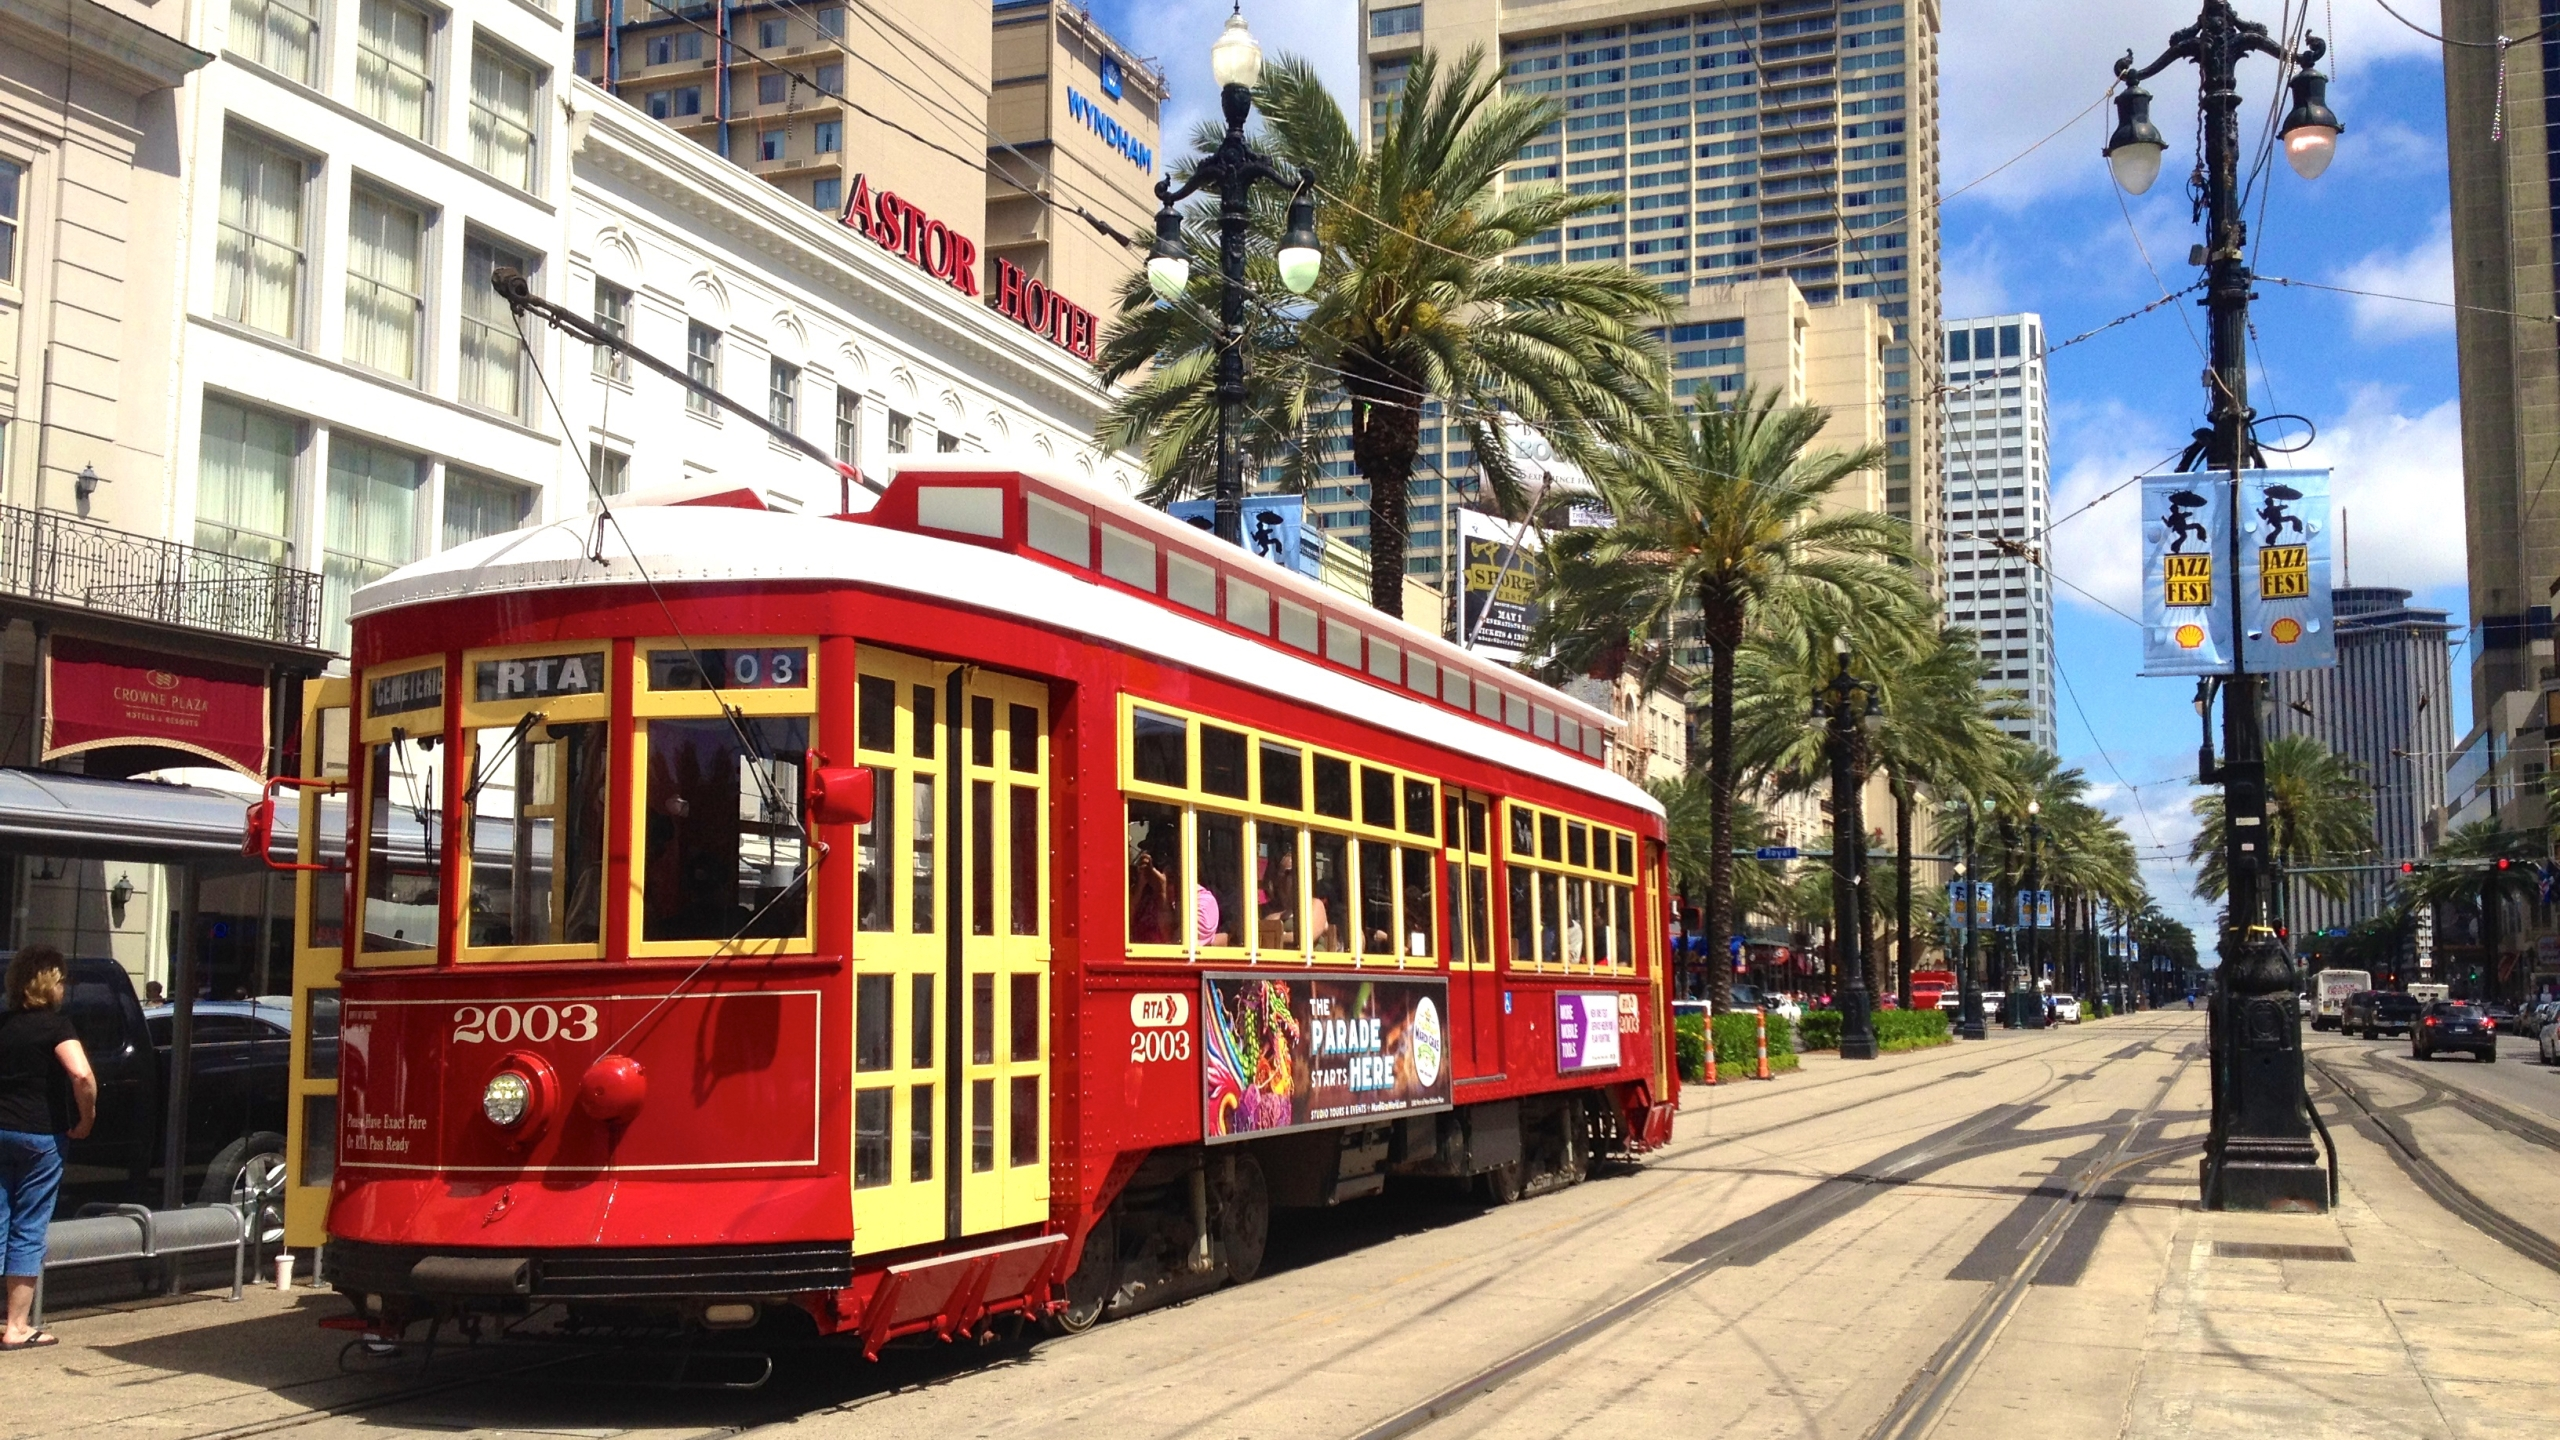 Canal_Streetcar_in_New_Orleans,_Louisiana,_USA_1515690173158.jpg